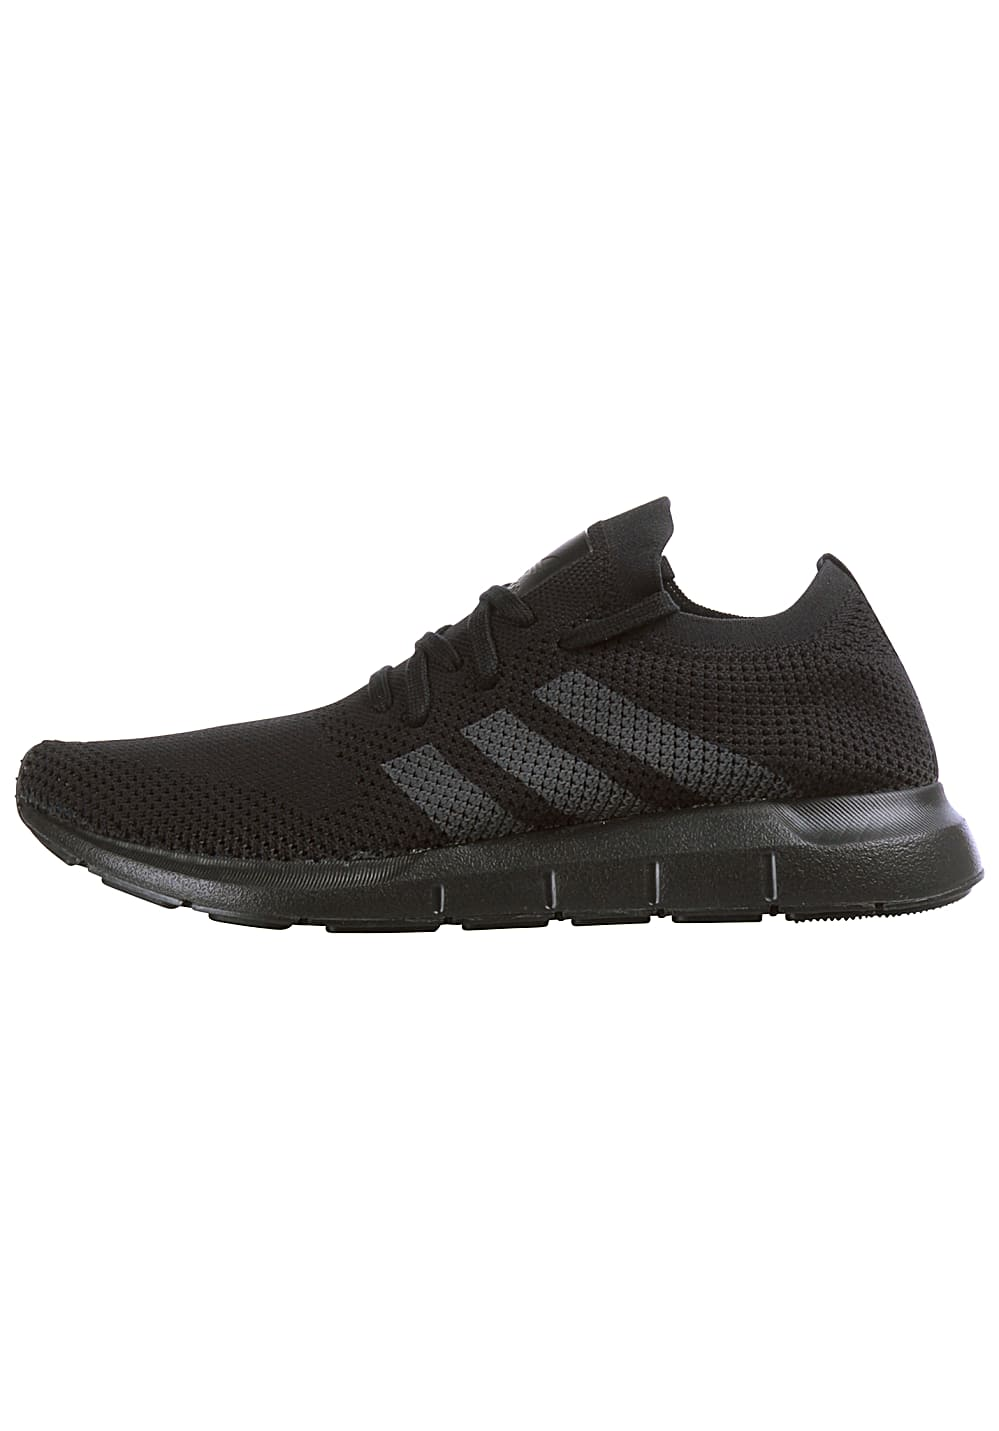 adidas Originals Swift Run PK Sneaker Schwarz